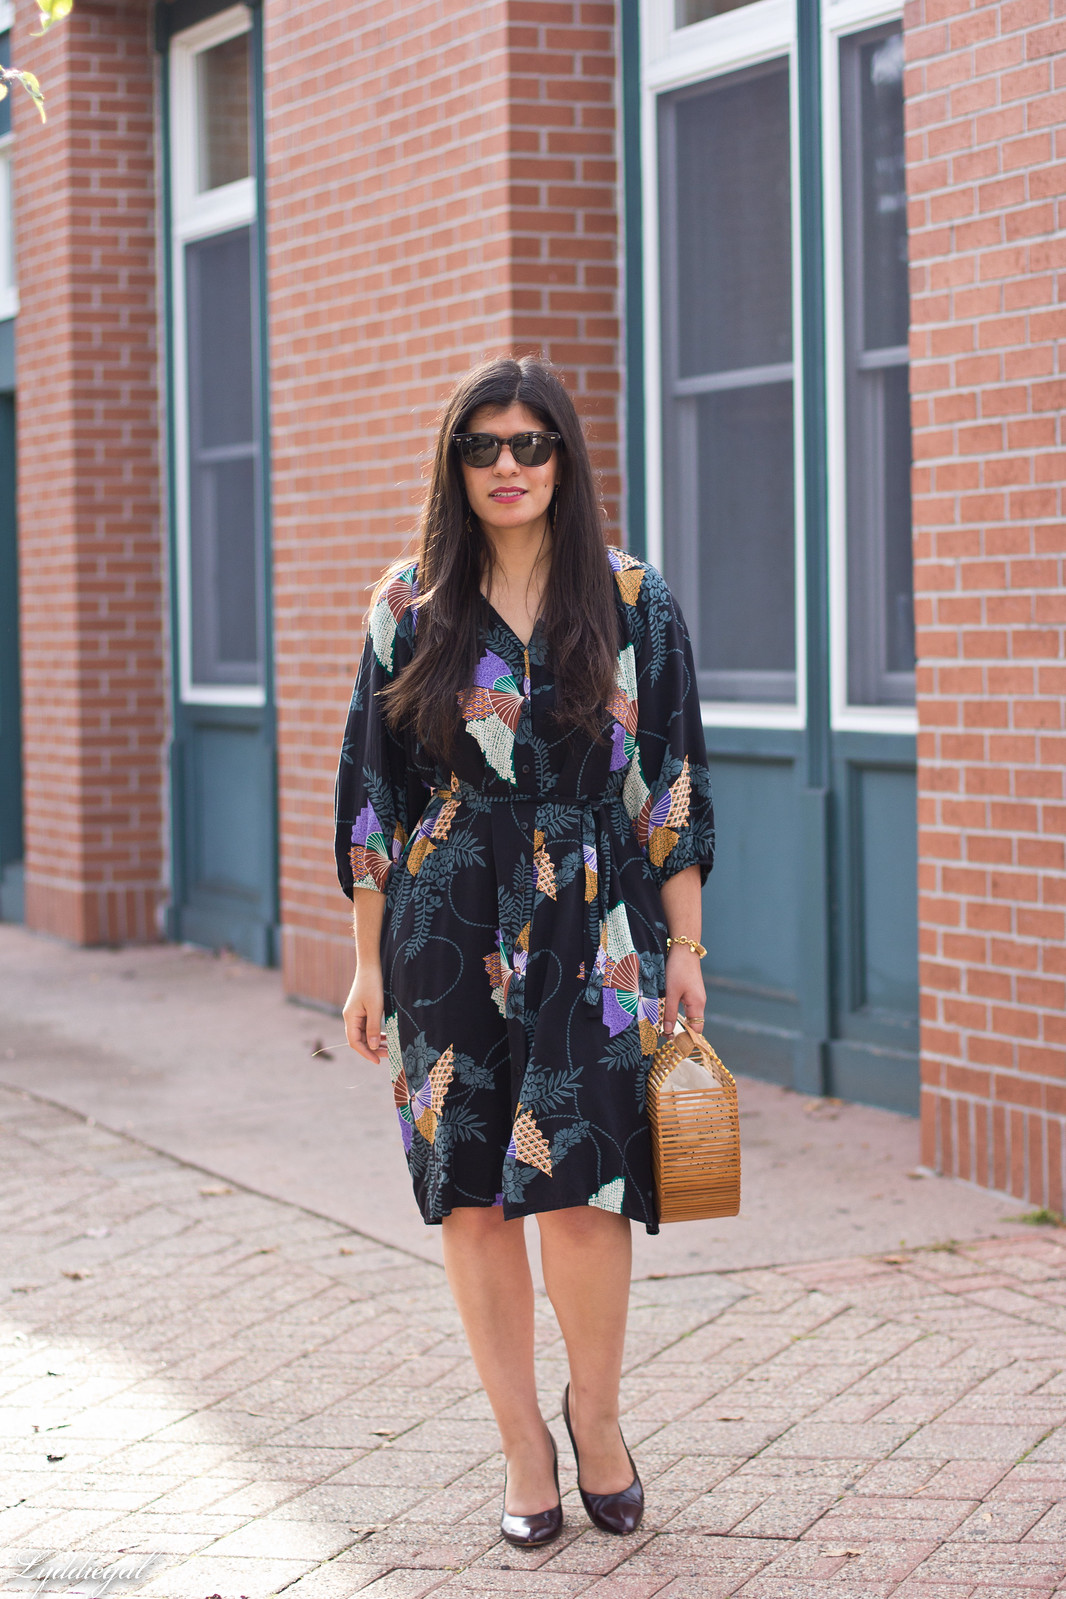 Tucker Japanese Floral Dress, Bamboo Bag, Fall Outfit-4